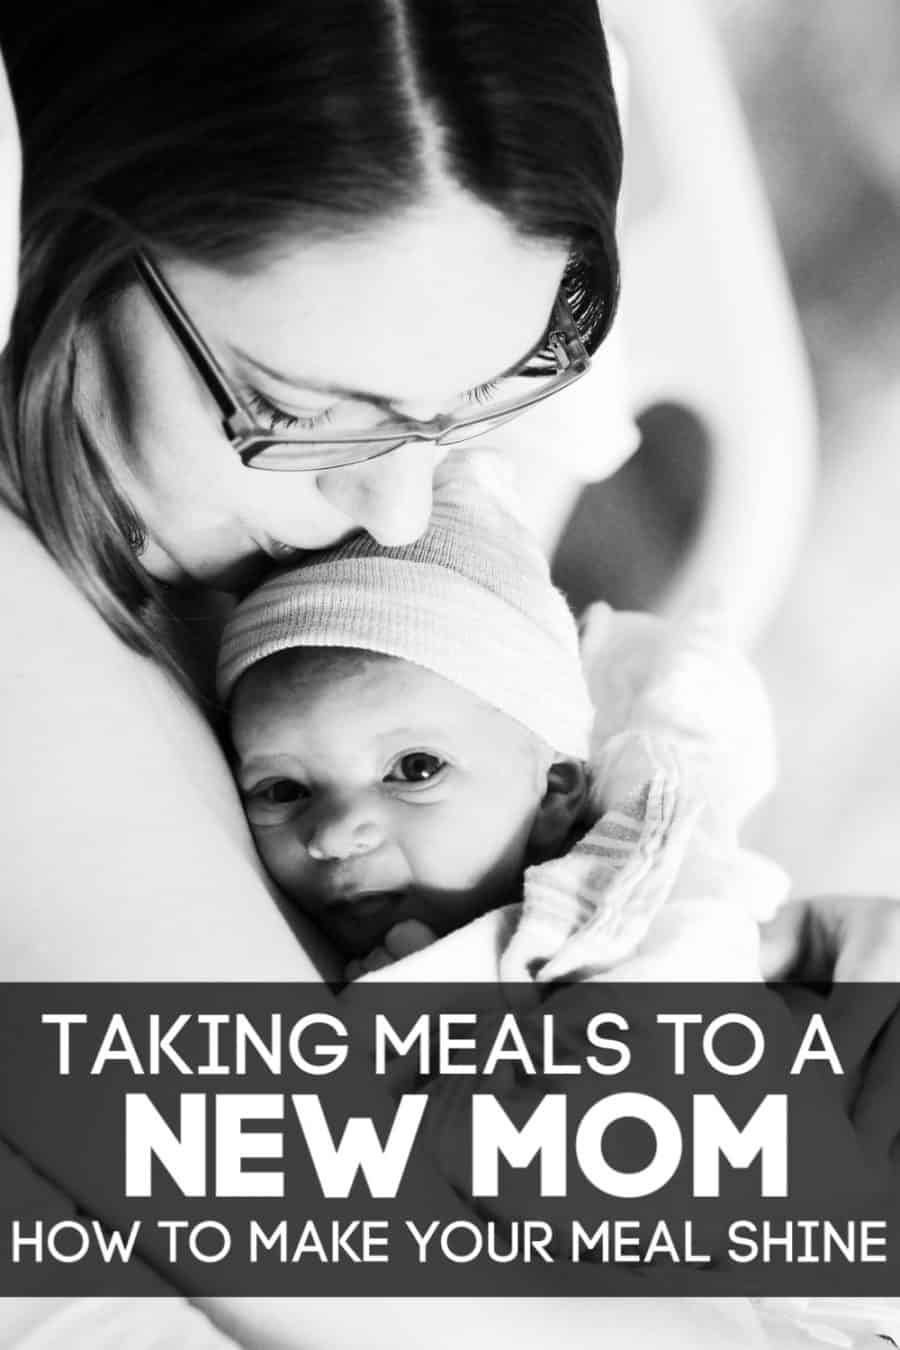 Taking Meals to a New Mom